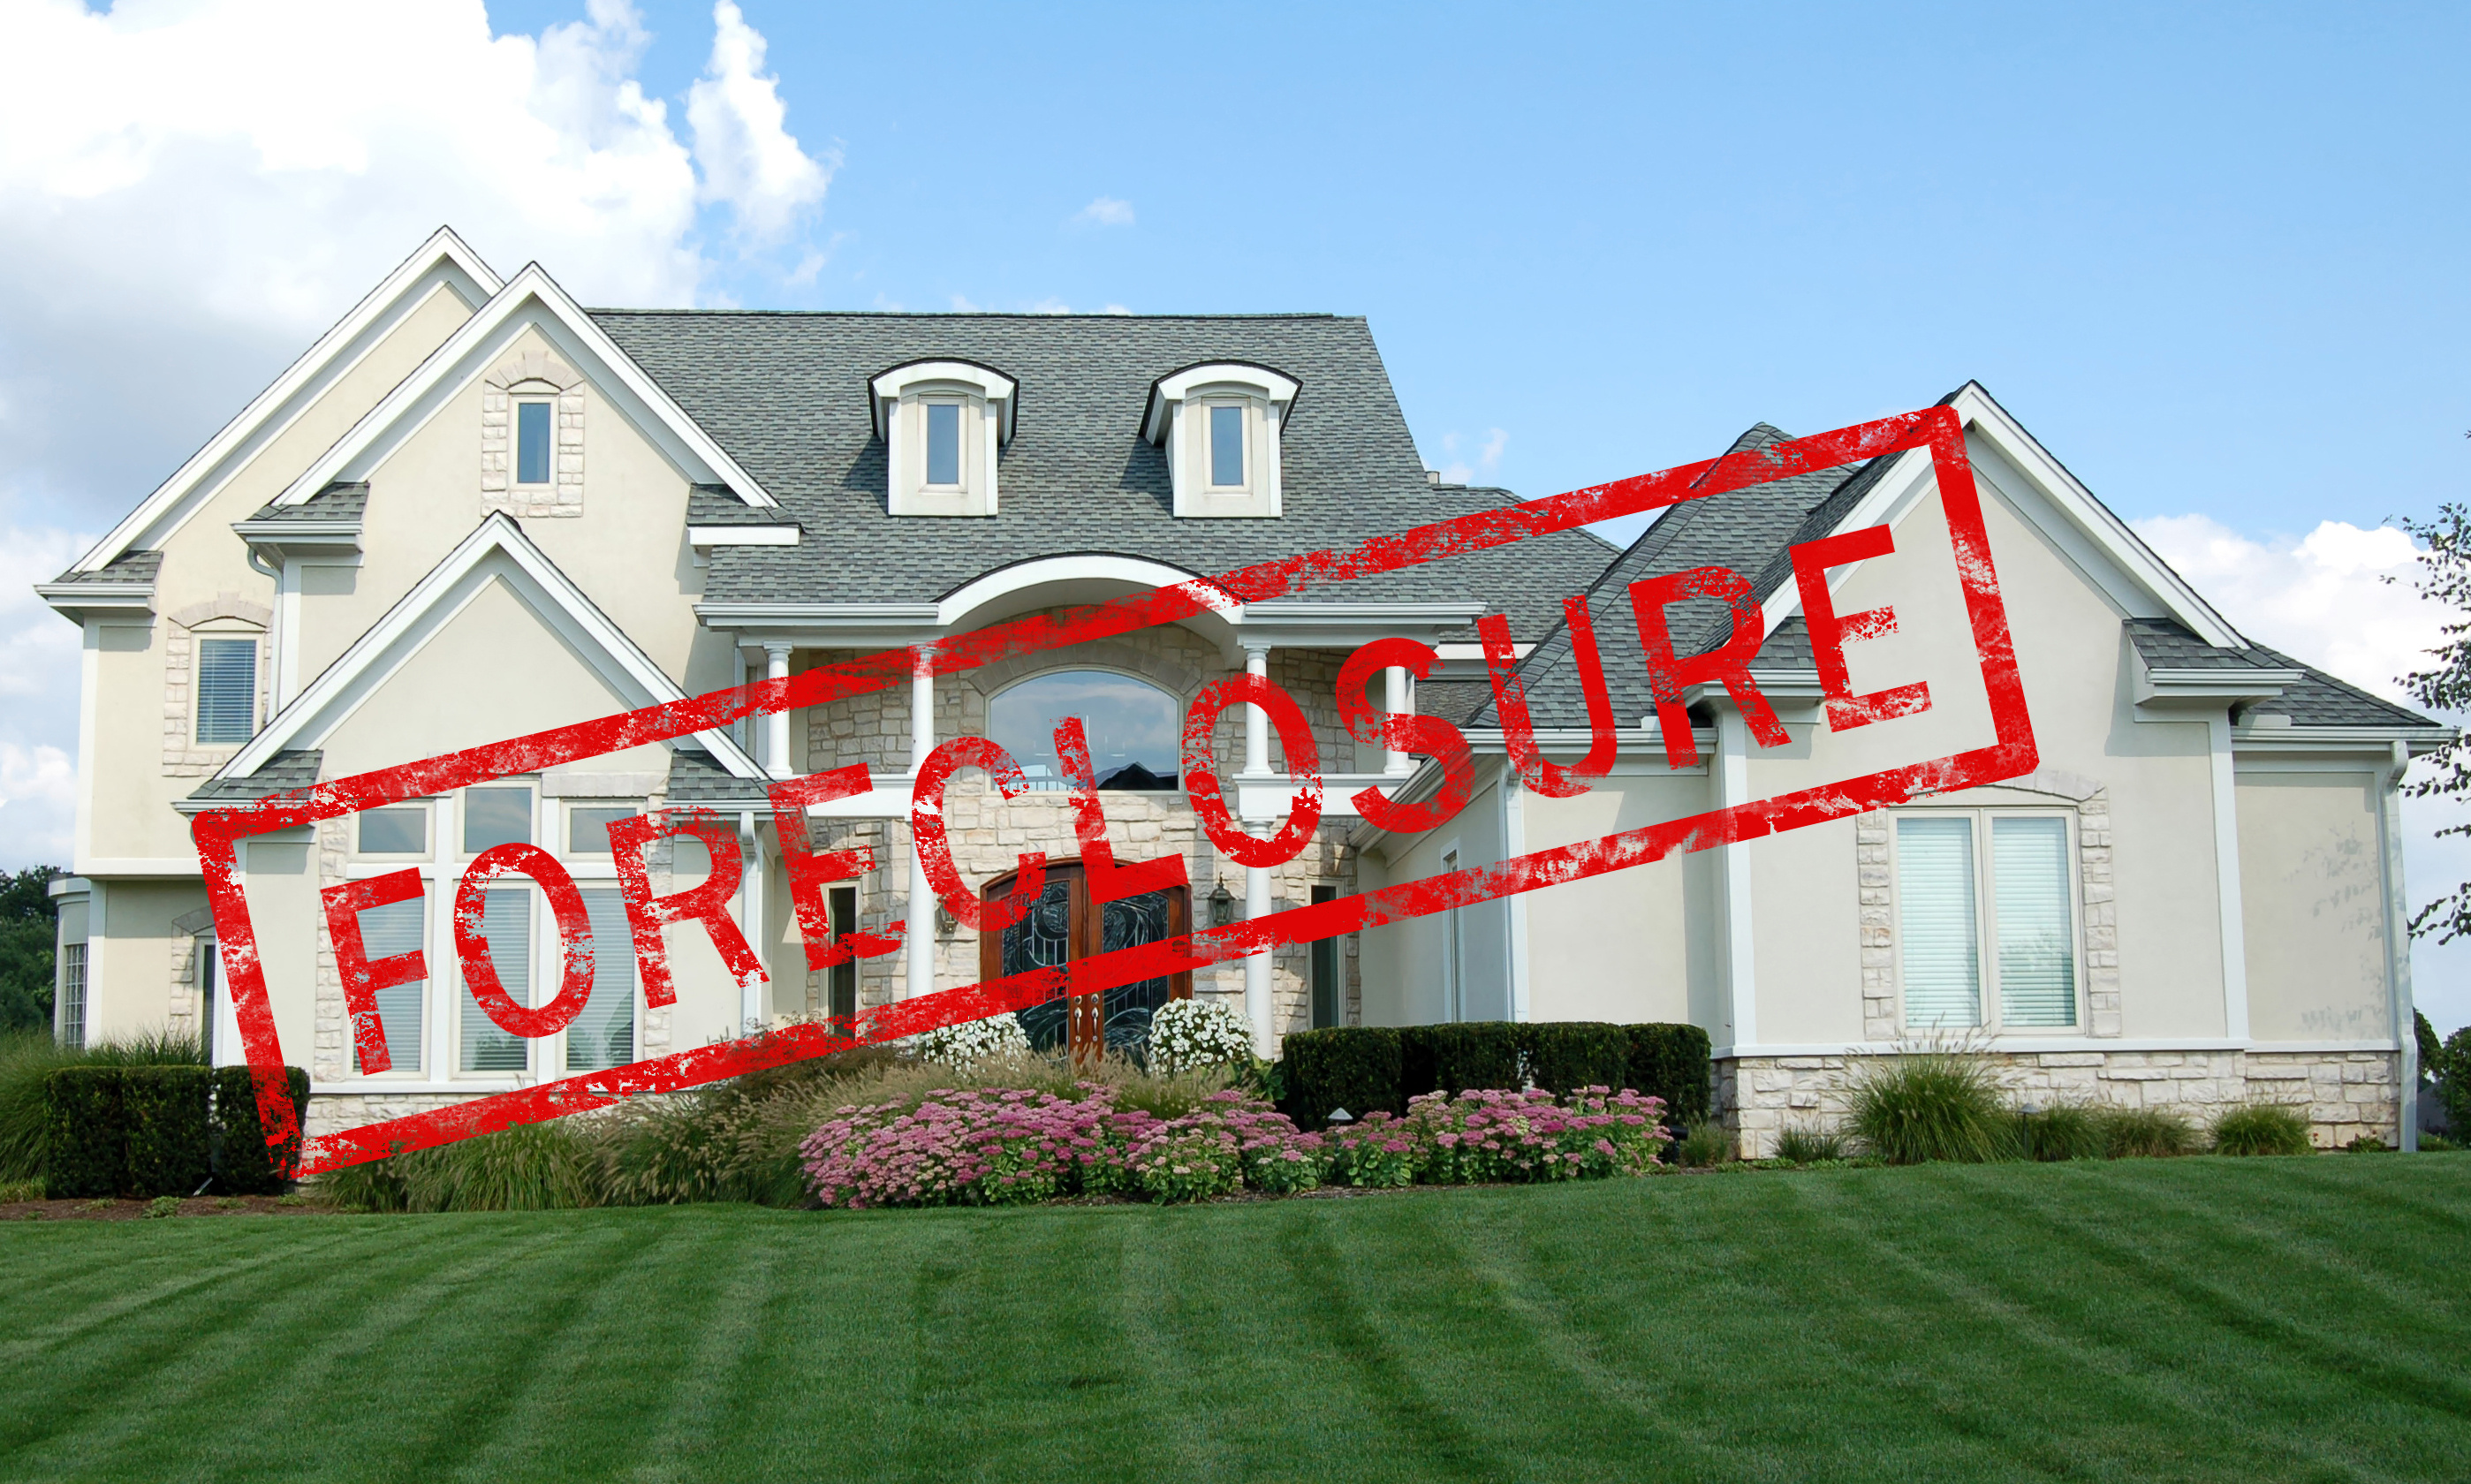 Call Dougherty & Associates, L.L.C. when you need valuations on Warren foreclosures